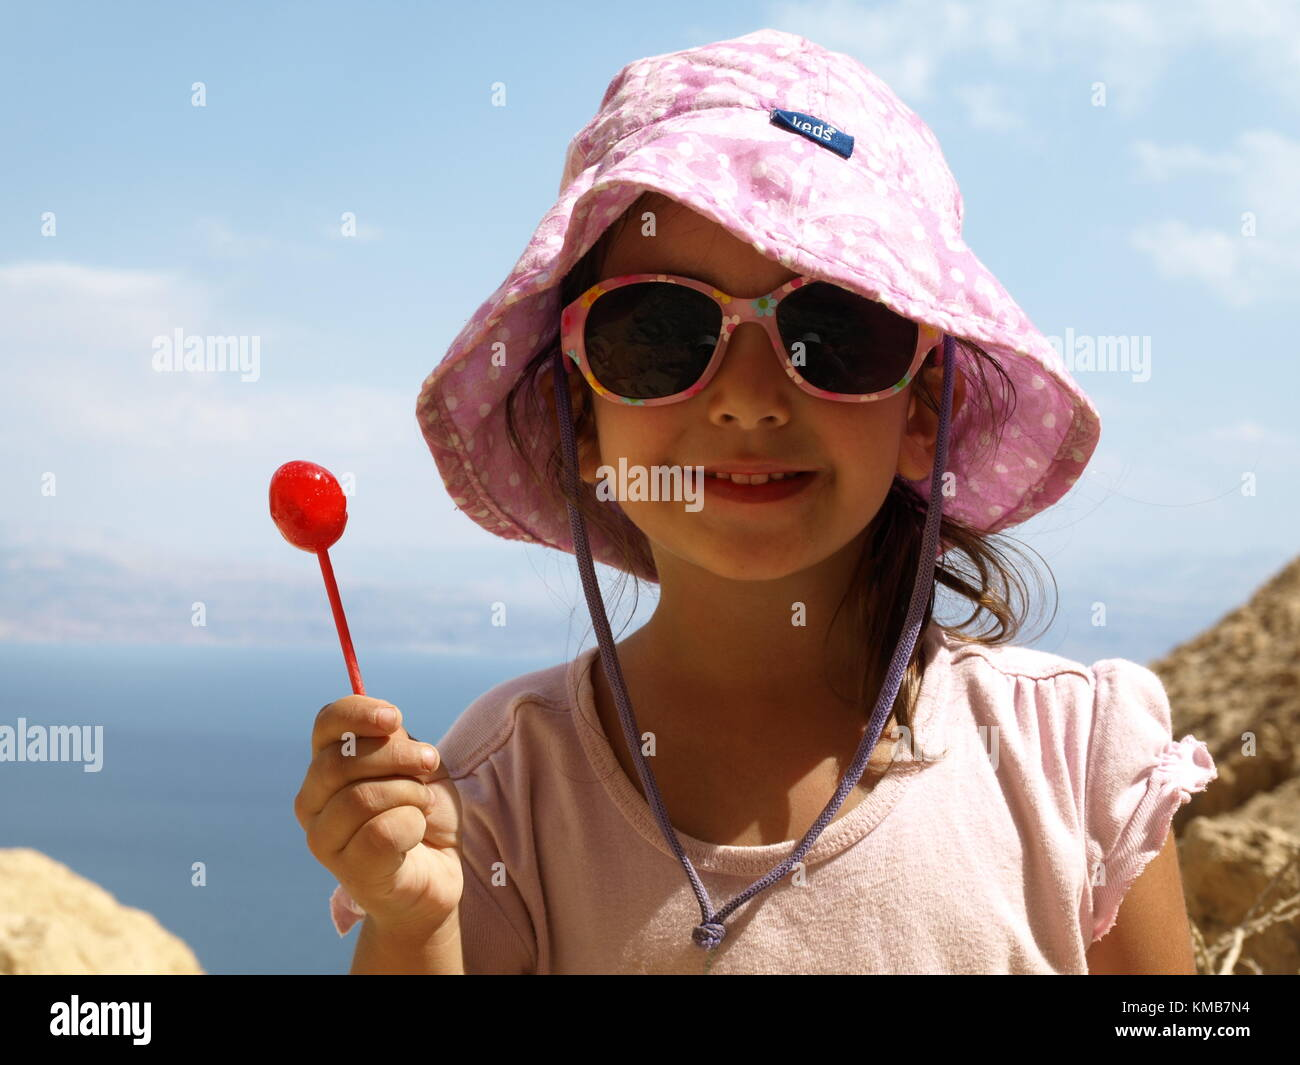 a smiling girl with lollipop on a hike Stock Photo